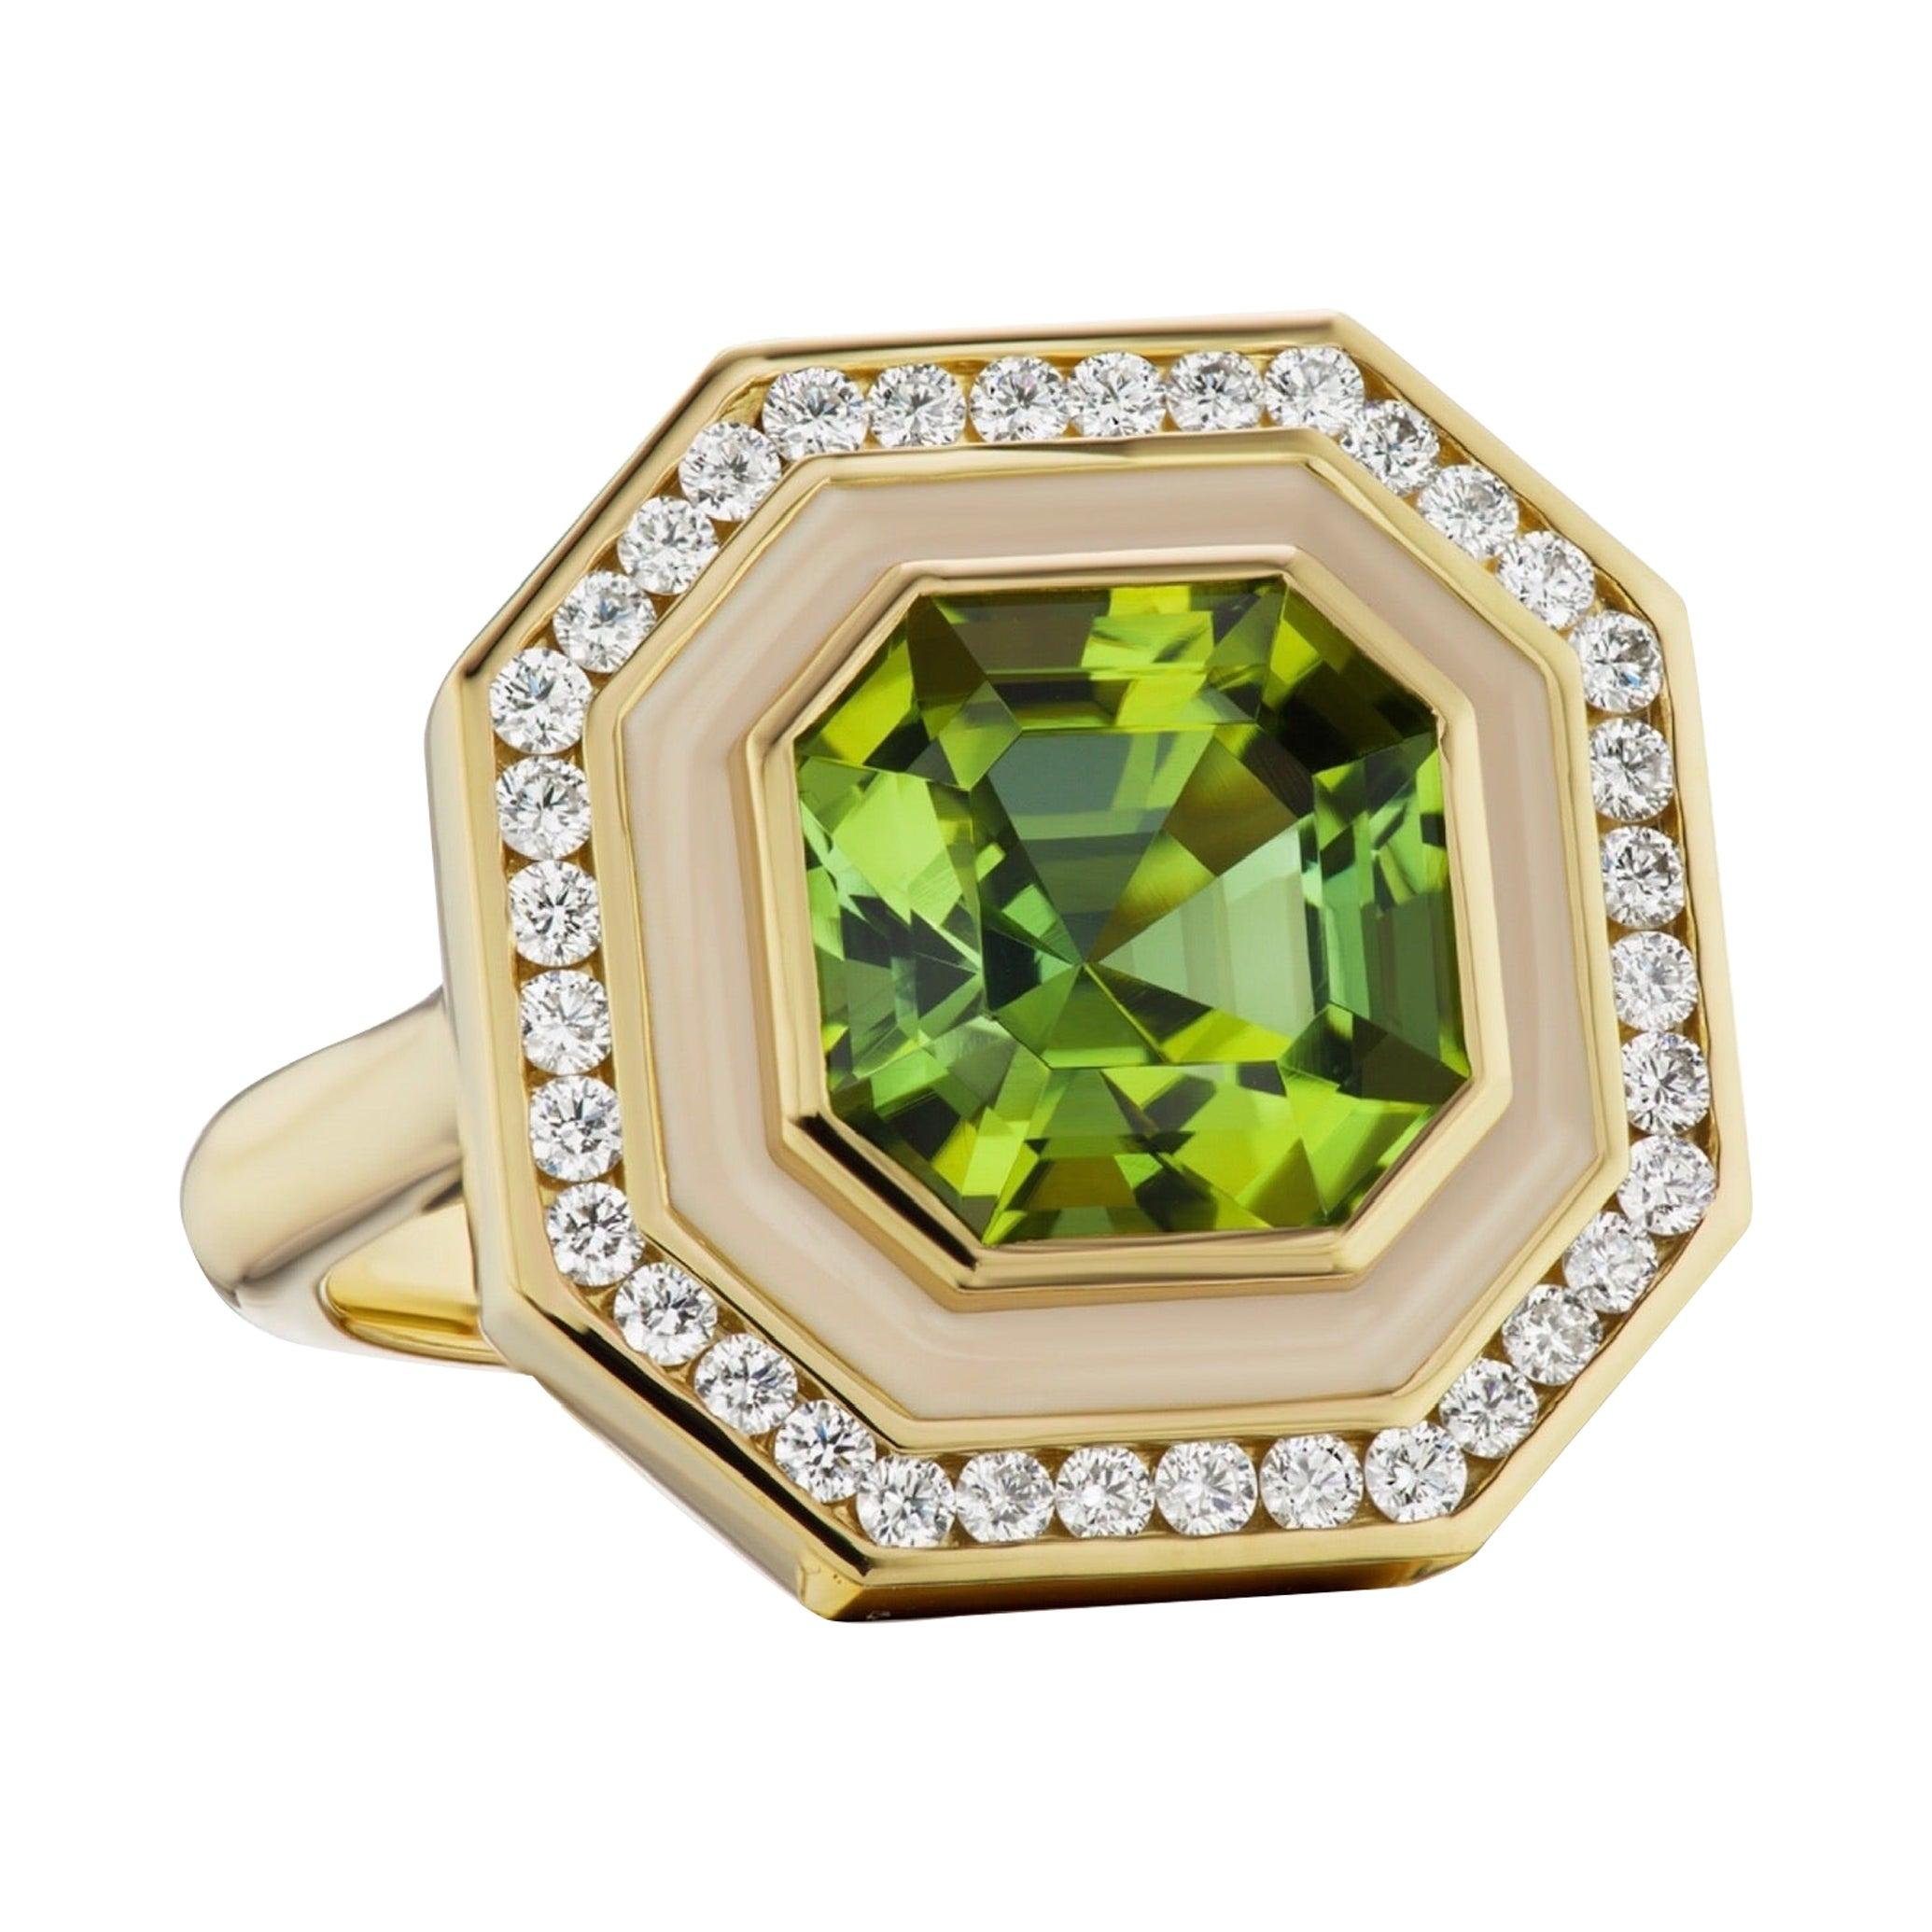 Museum Series Green Tourmaline Ring with Diamonds in Enamel for Custom Order